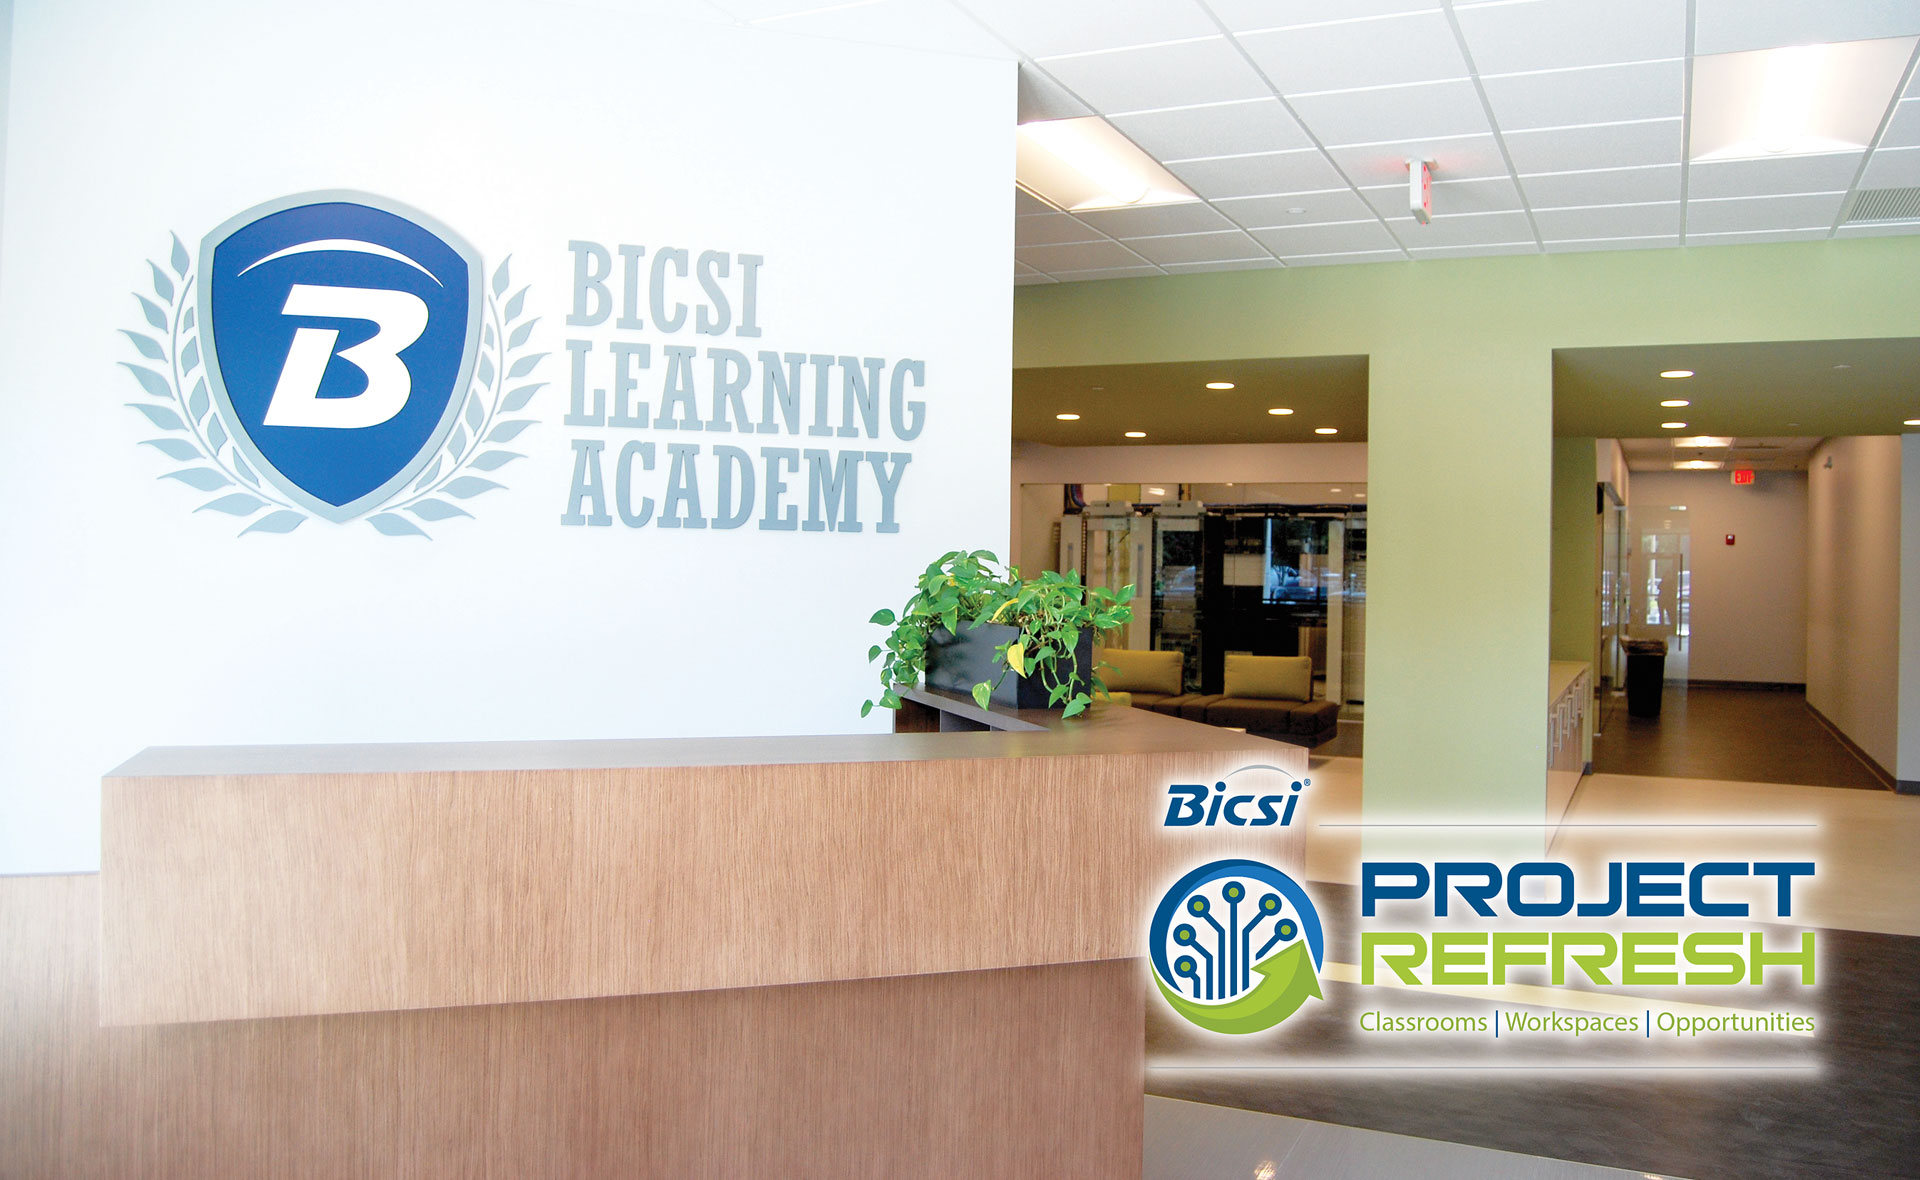 BICSI Learning Academy Entry Lobby